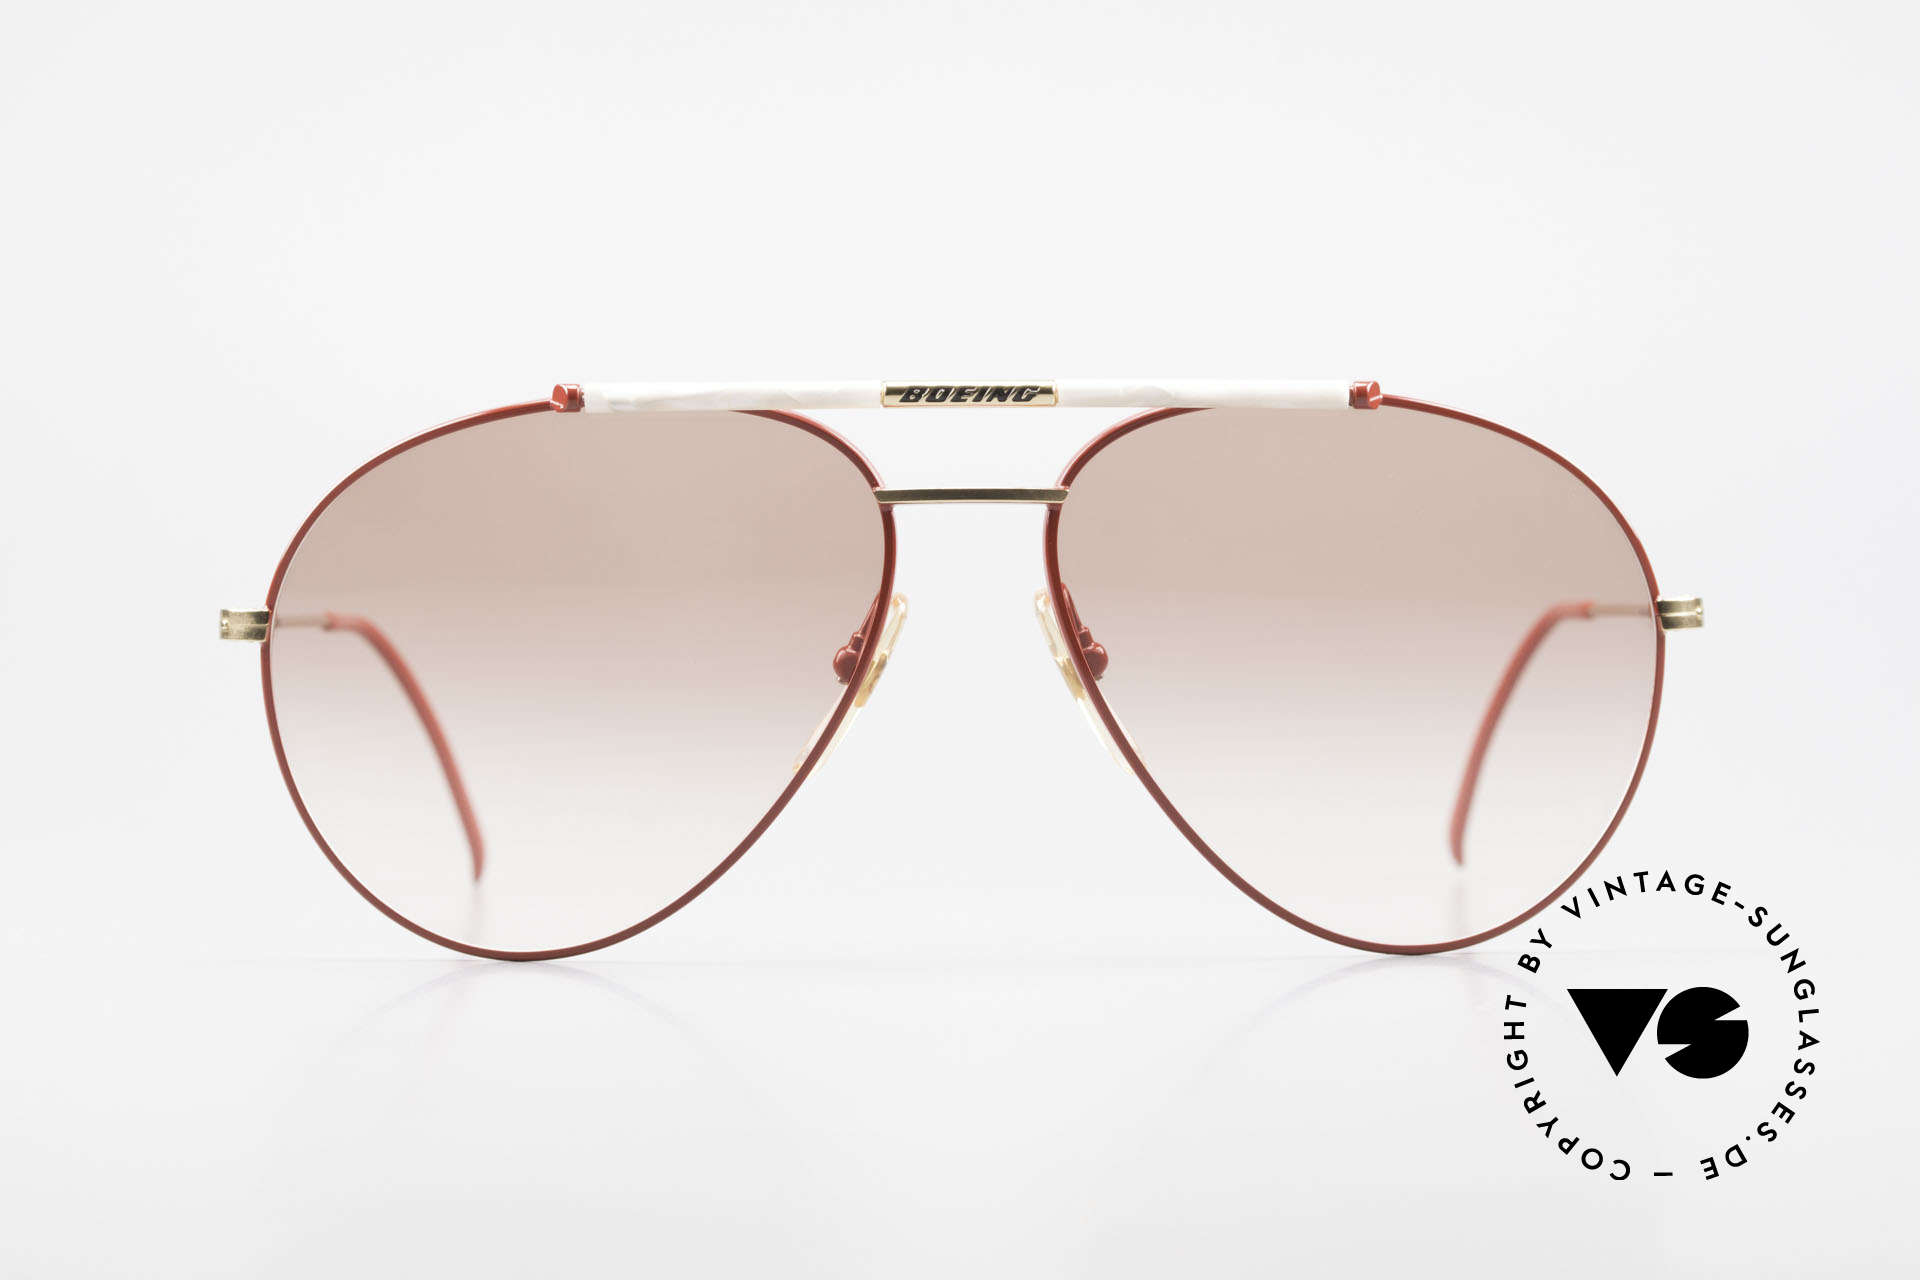 Boeing 5706 Old 1980's Aviator Sunglasses, the legendary 'The BOEING Collection by Carrera', Made for Men and Women